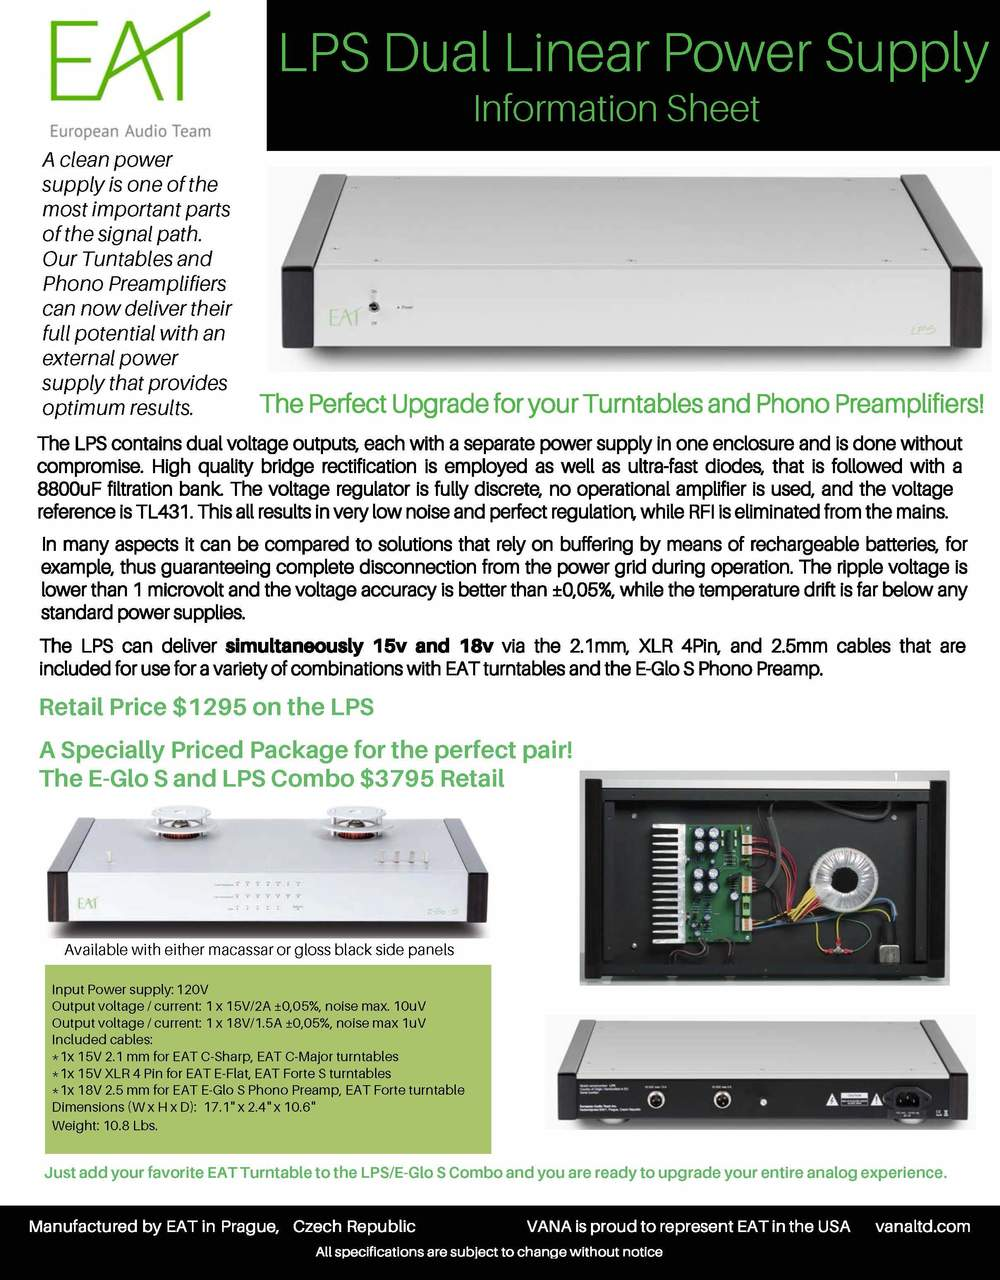 FACT SHEET EAT LPS Linear Power Supply for E-Glo S. Ultra Quiet. X2